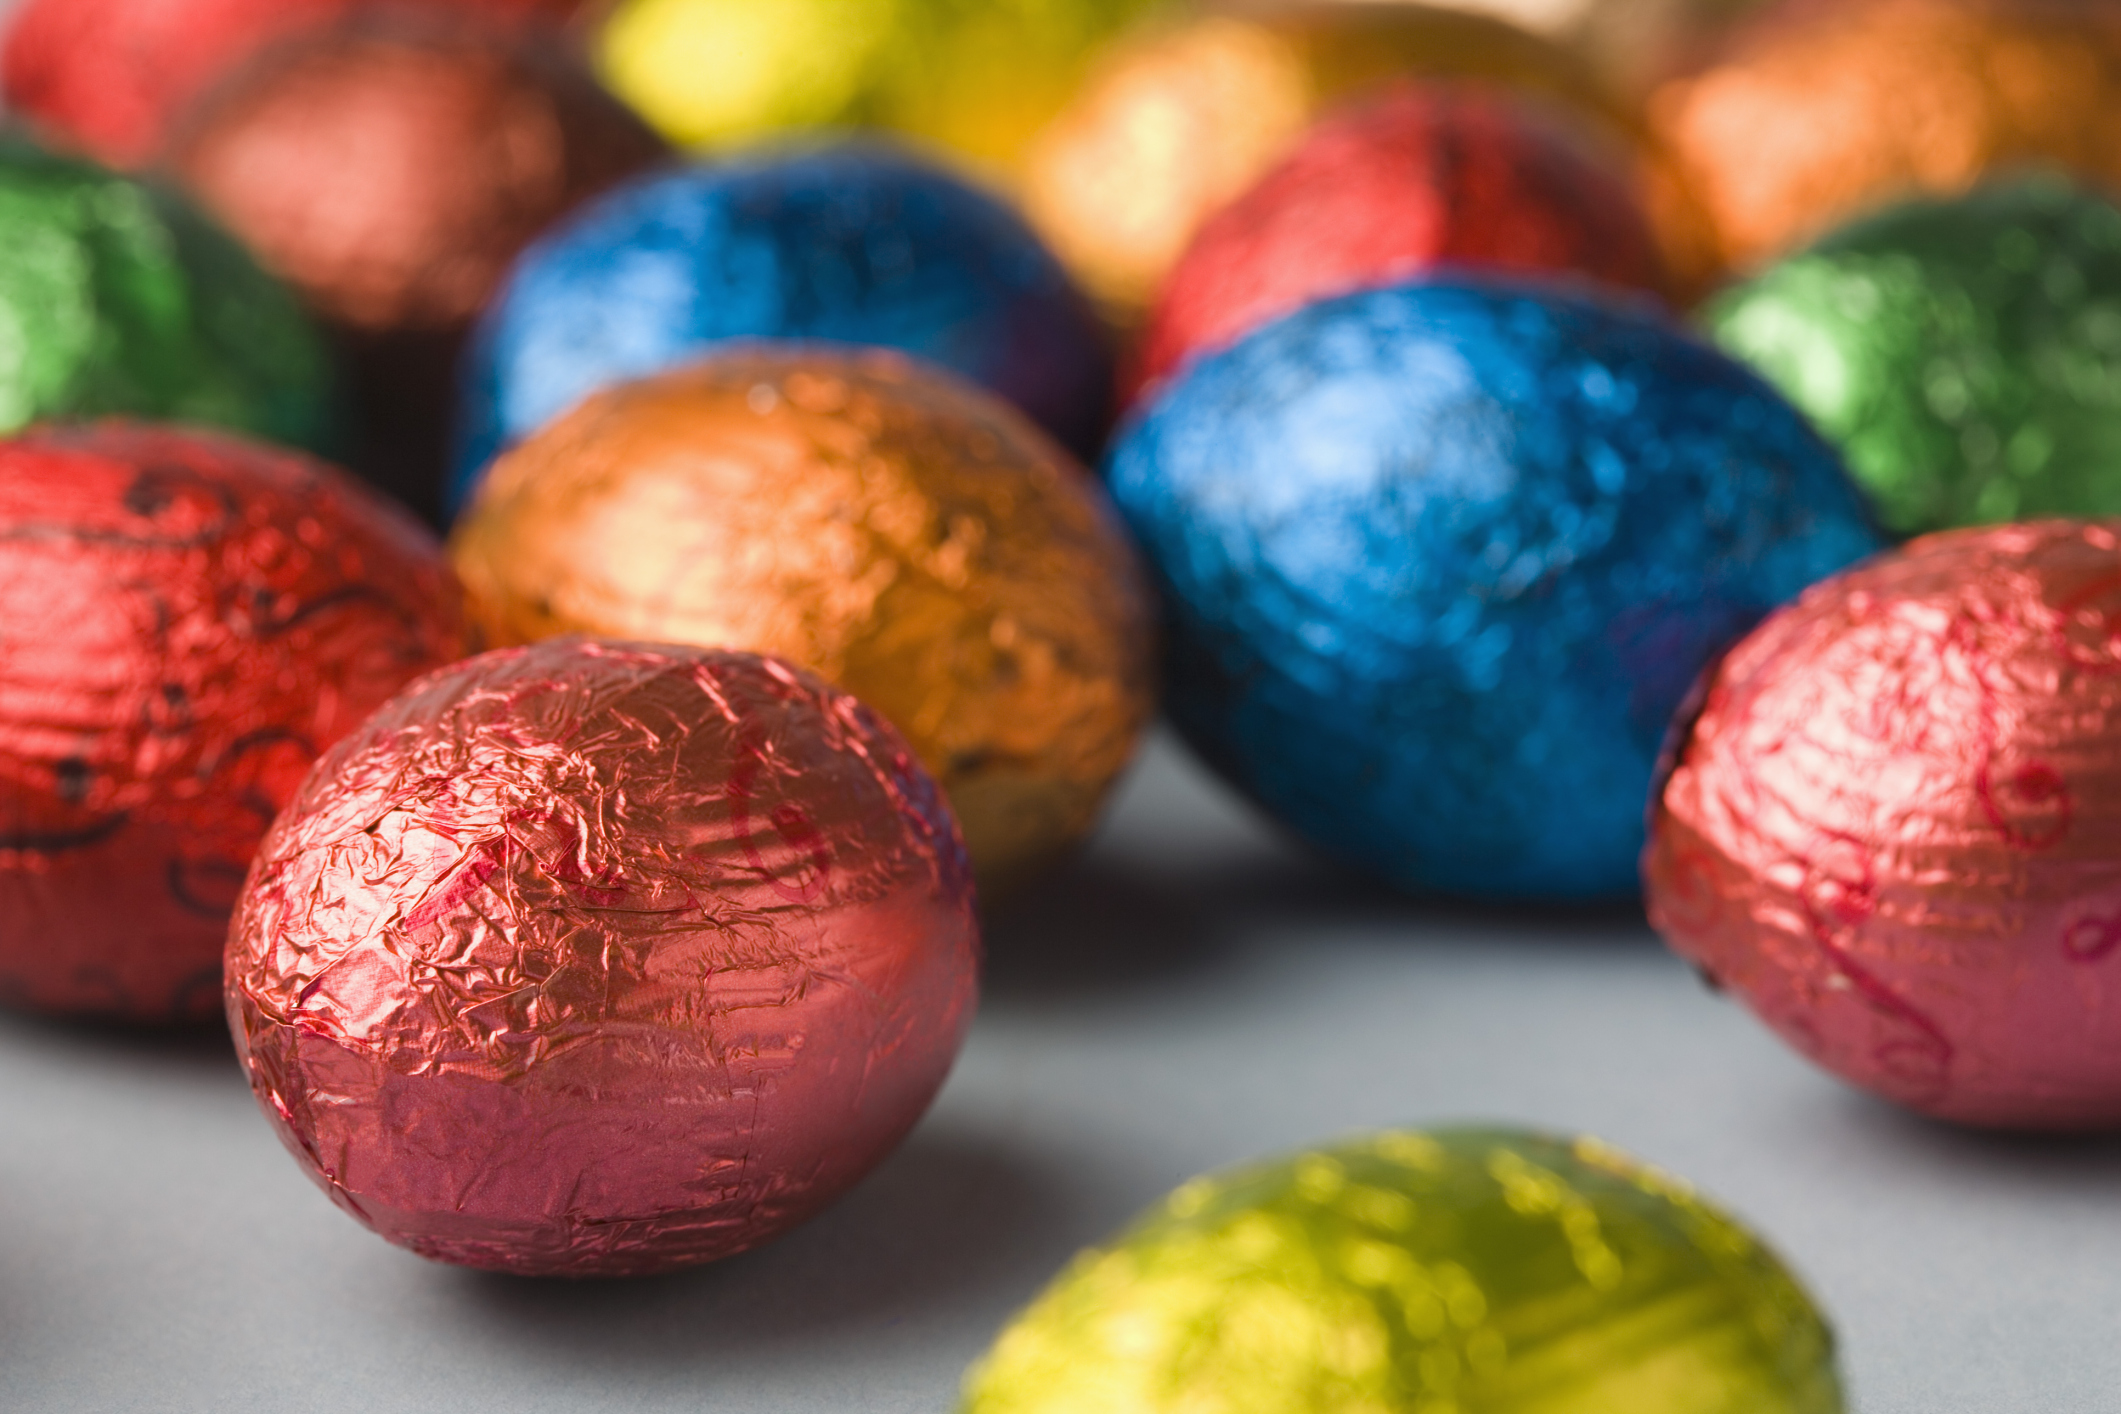 Candy should be eaten only occasionally, as it is not a healthy food.